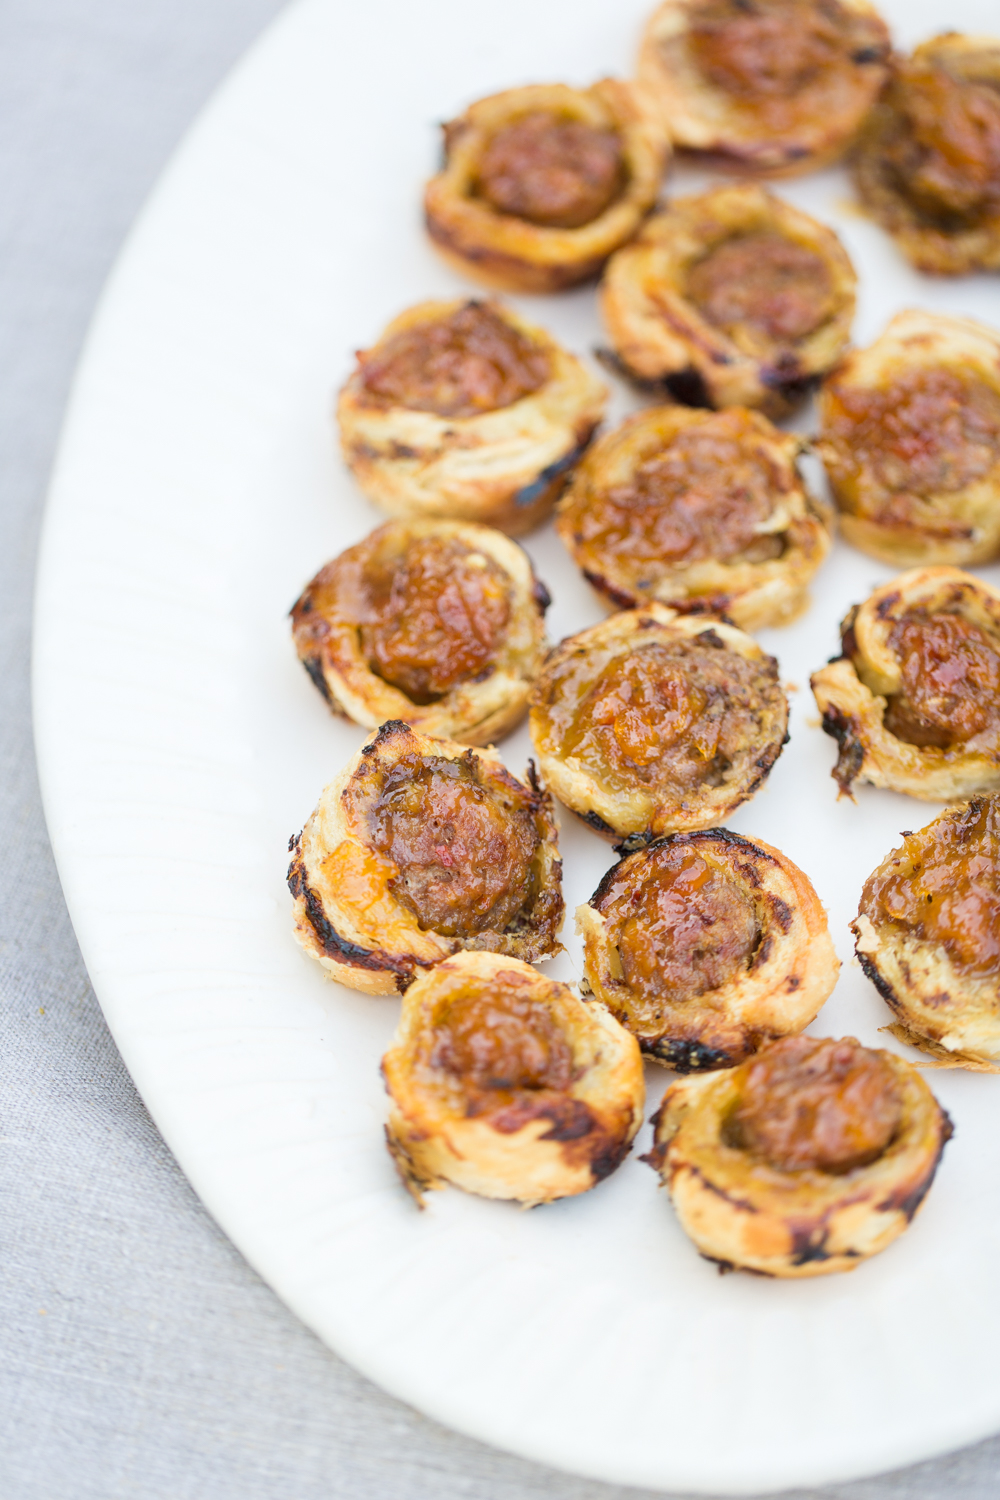 heinens4pmpanic_apricot_sausage_puffpastry_ap-8912